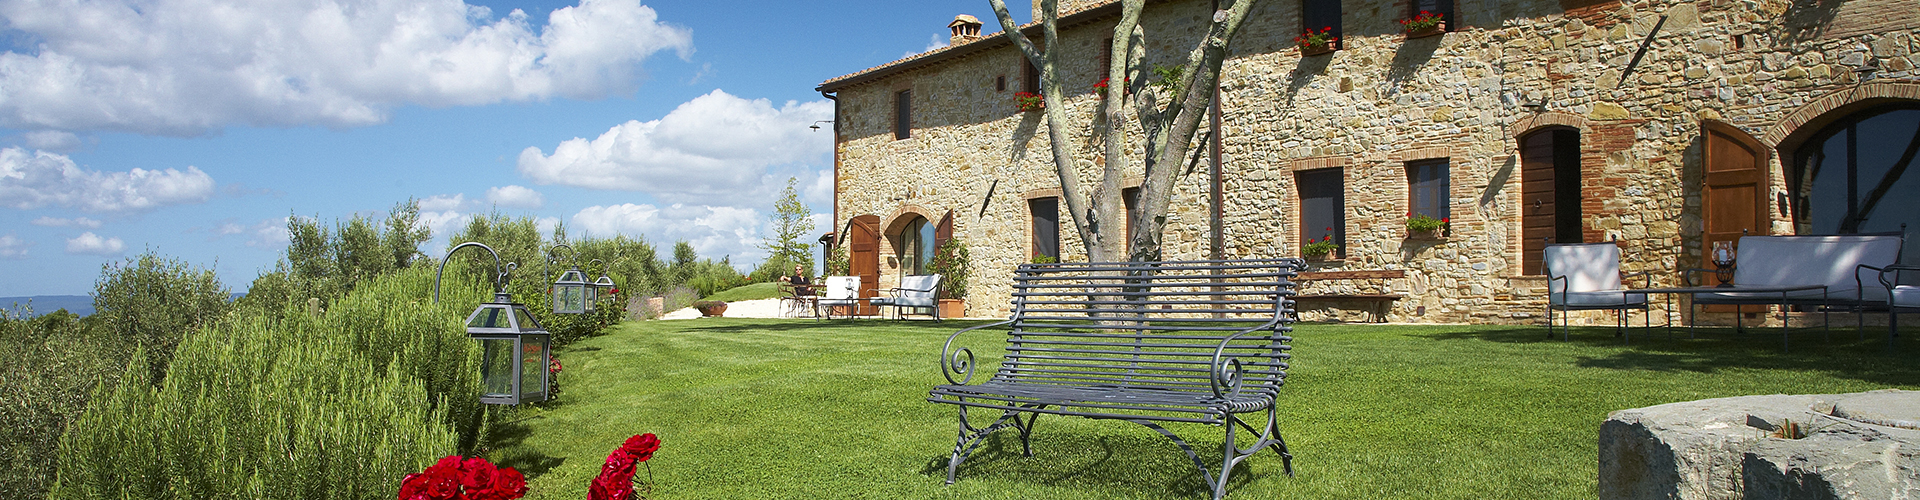 AGRITURISMO IL CELLESE (3)